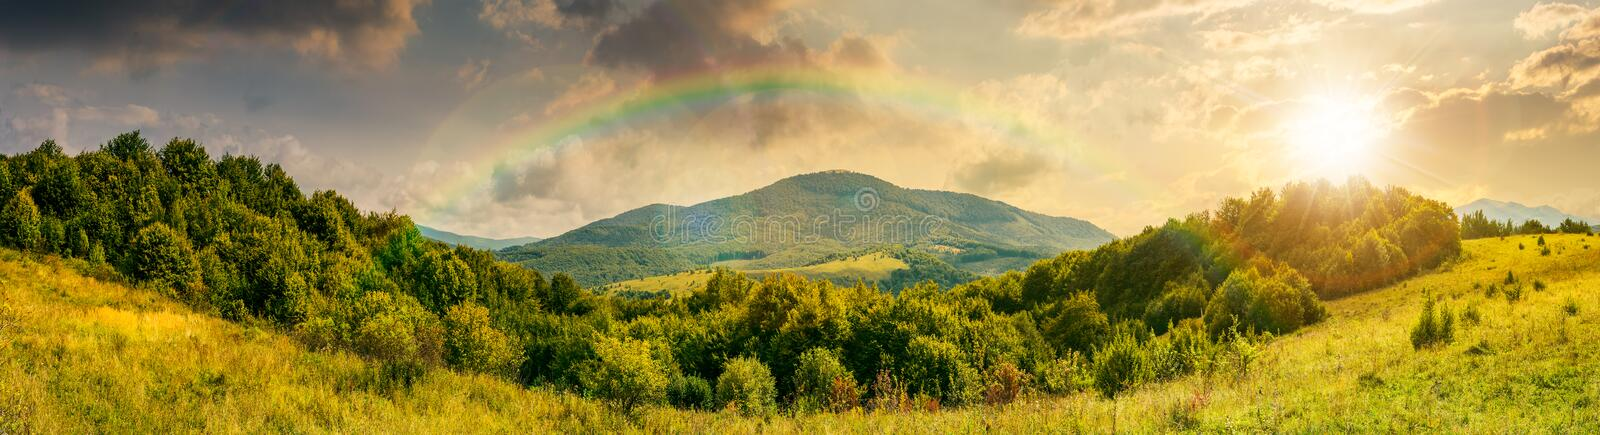 Panorama of mountainous countryside at sunset royalty free stock photos